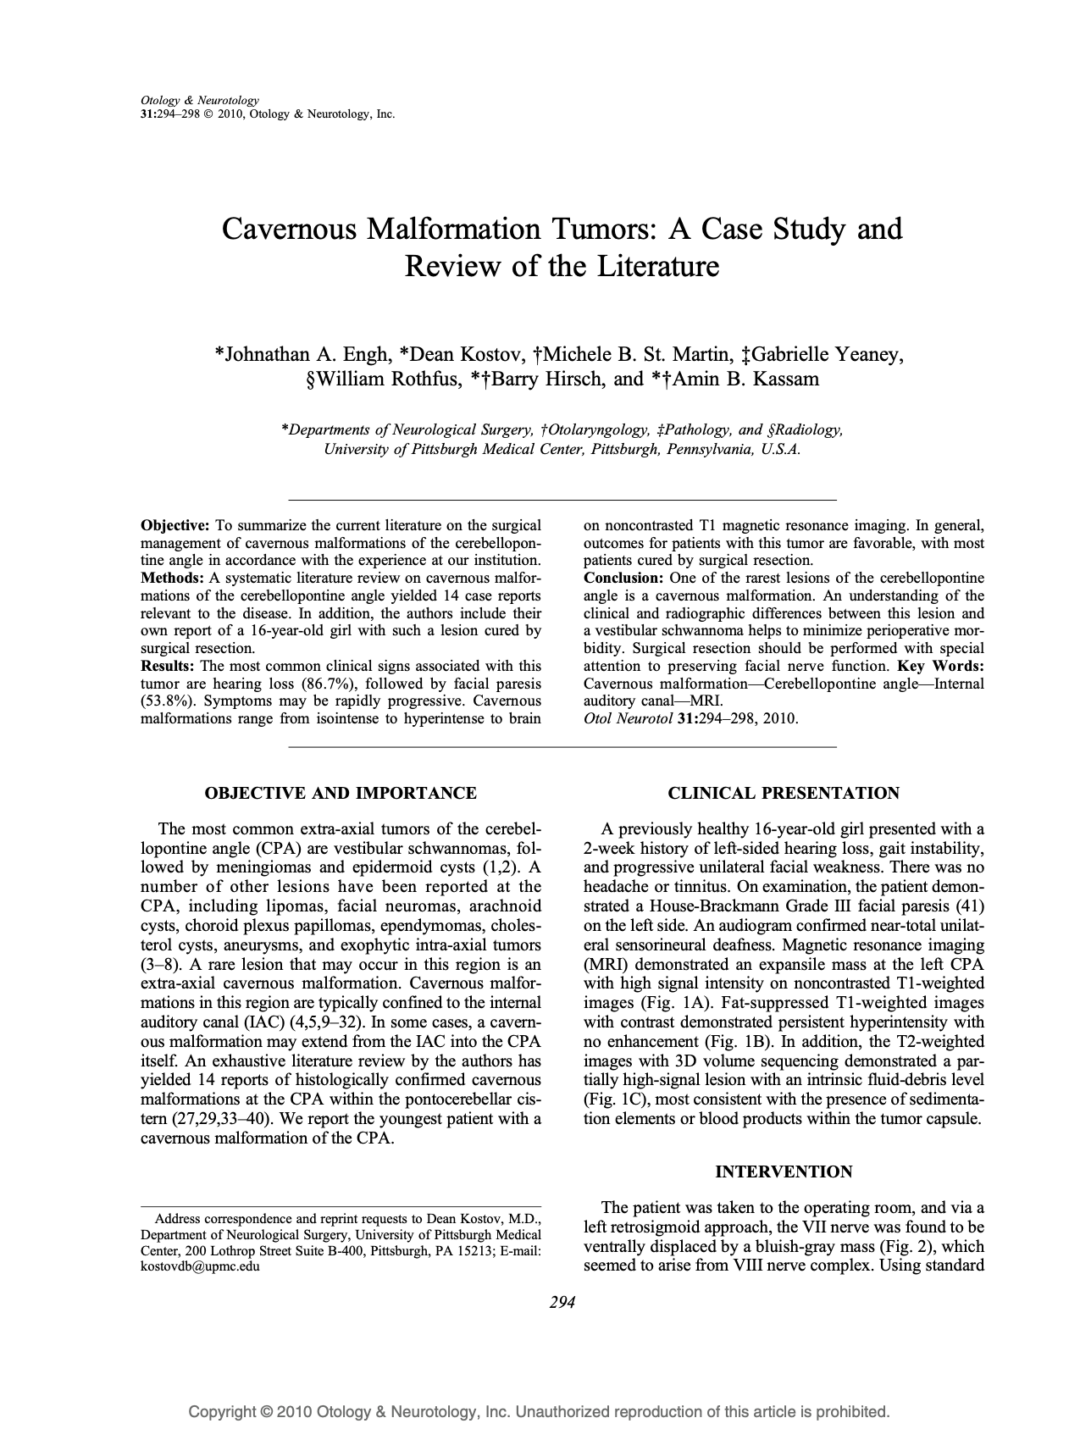 Cavernous Malformation Tumors: A Case Study and Review of the Literature